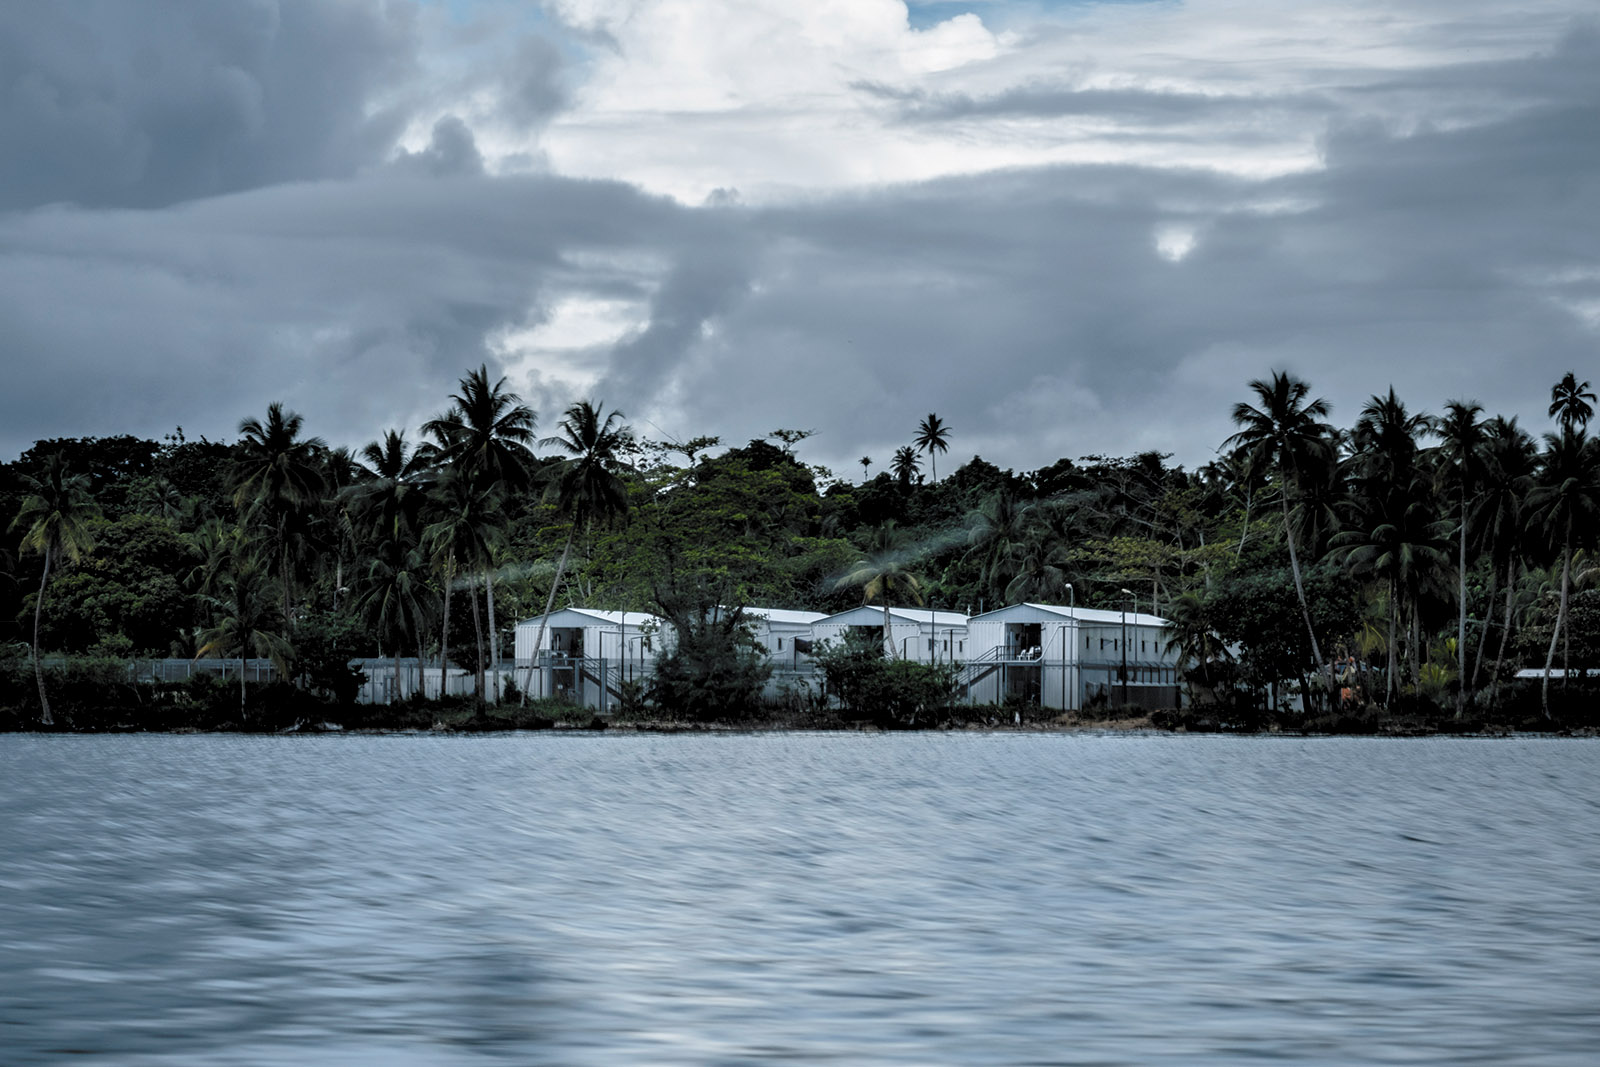 An Australian-run camp where asylum-seekers who try to reach Australia by boat are detained, Manus Island, Papua New Guinea, November 2016